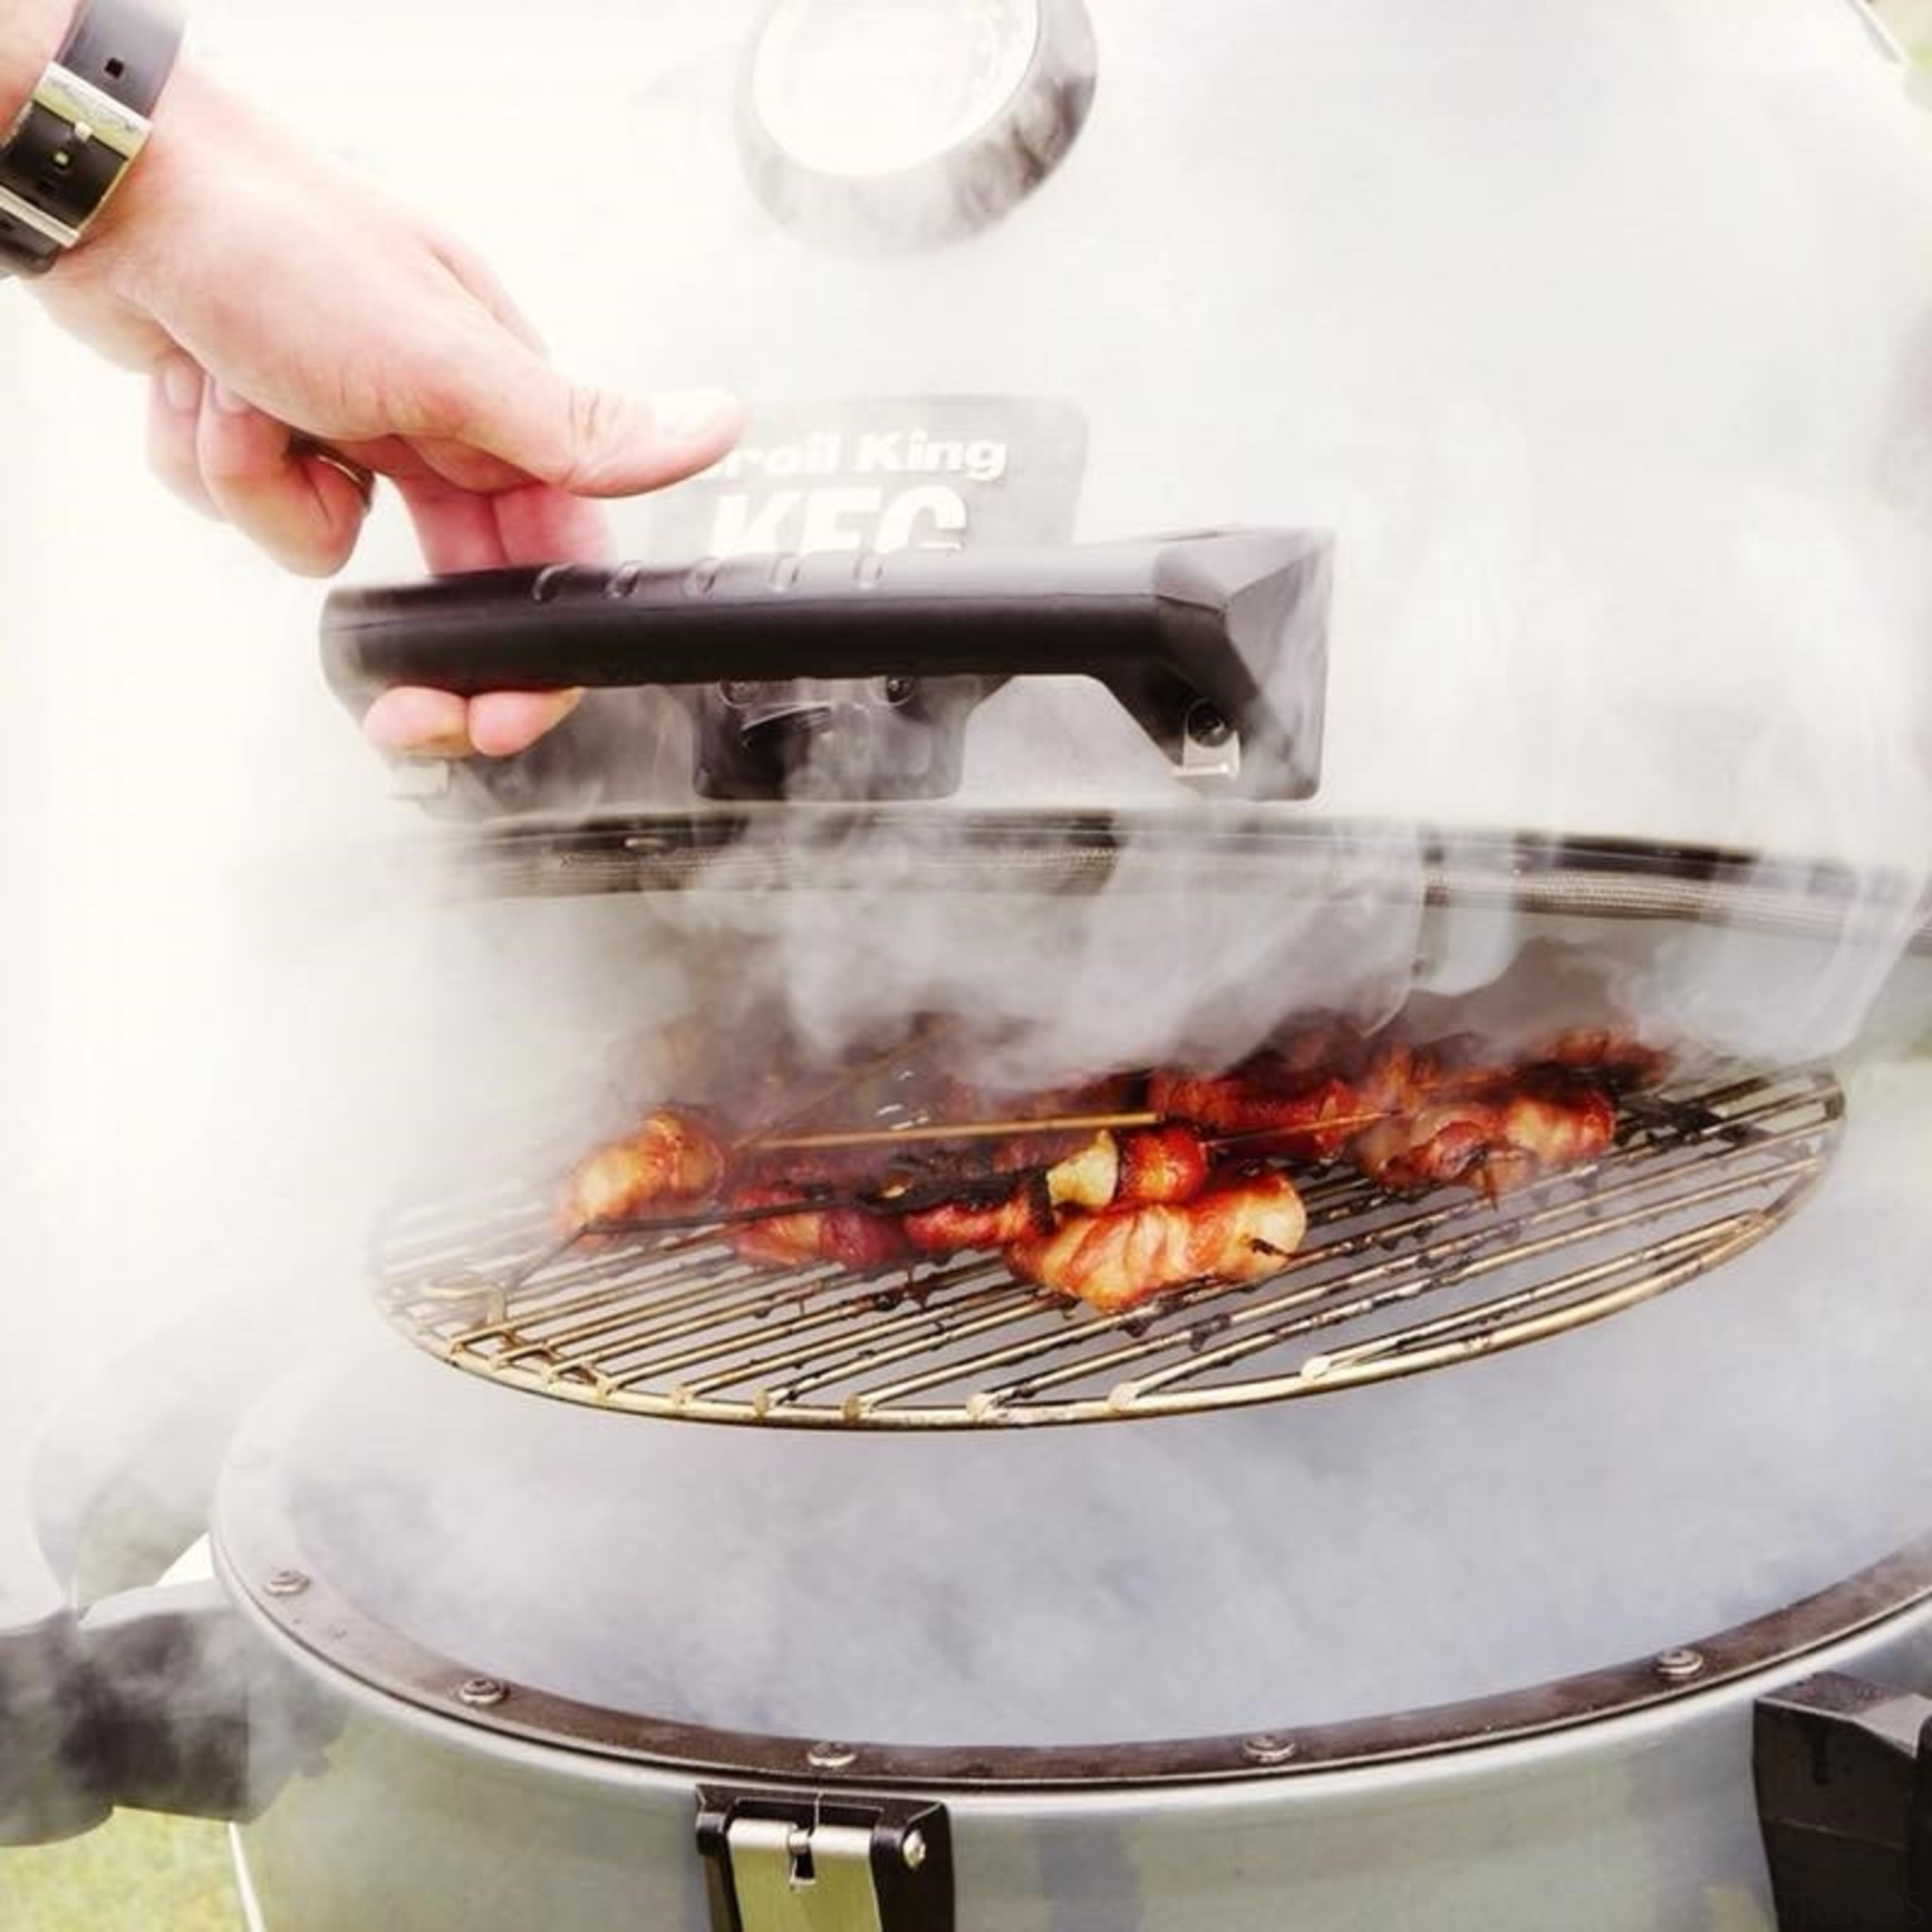 View our Charcoal and Smoke RangesWe've got animal source foods, barbecue, cookware and bakeware, cuisine, food, grilling, kitchen appliance, meat, white